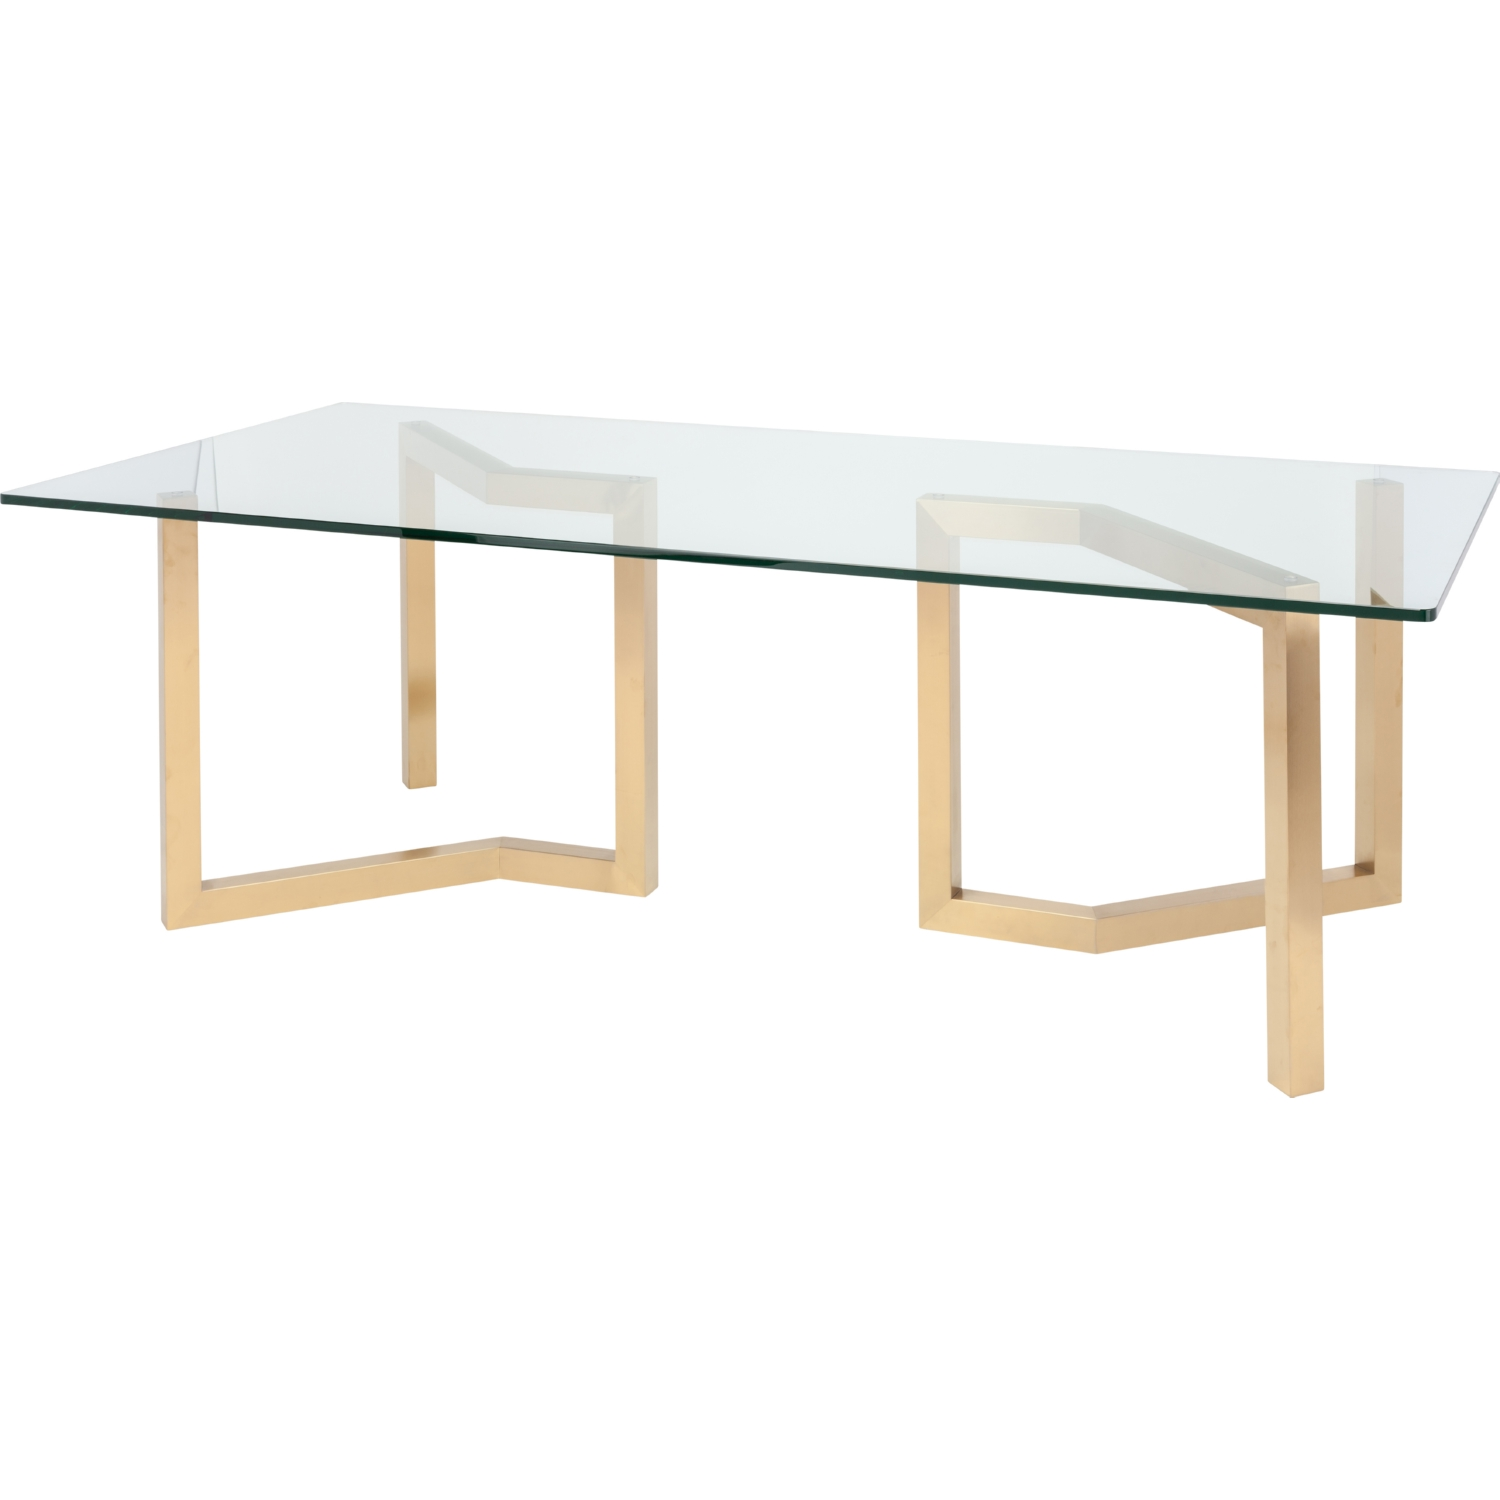 Nuevo Modern Furniture HGSX172 Paula 94 Dining Table W Brushed Gold Geometric Legs Glass Top